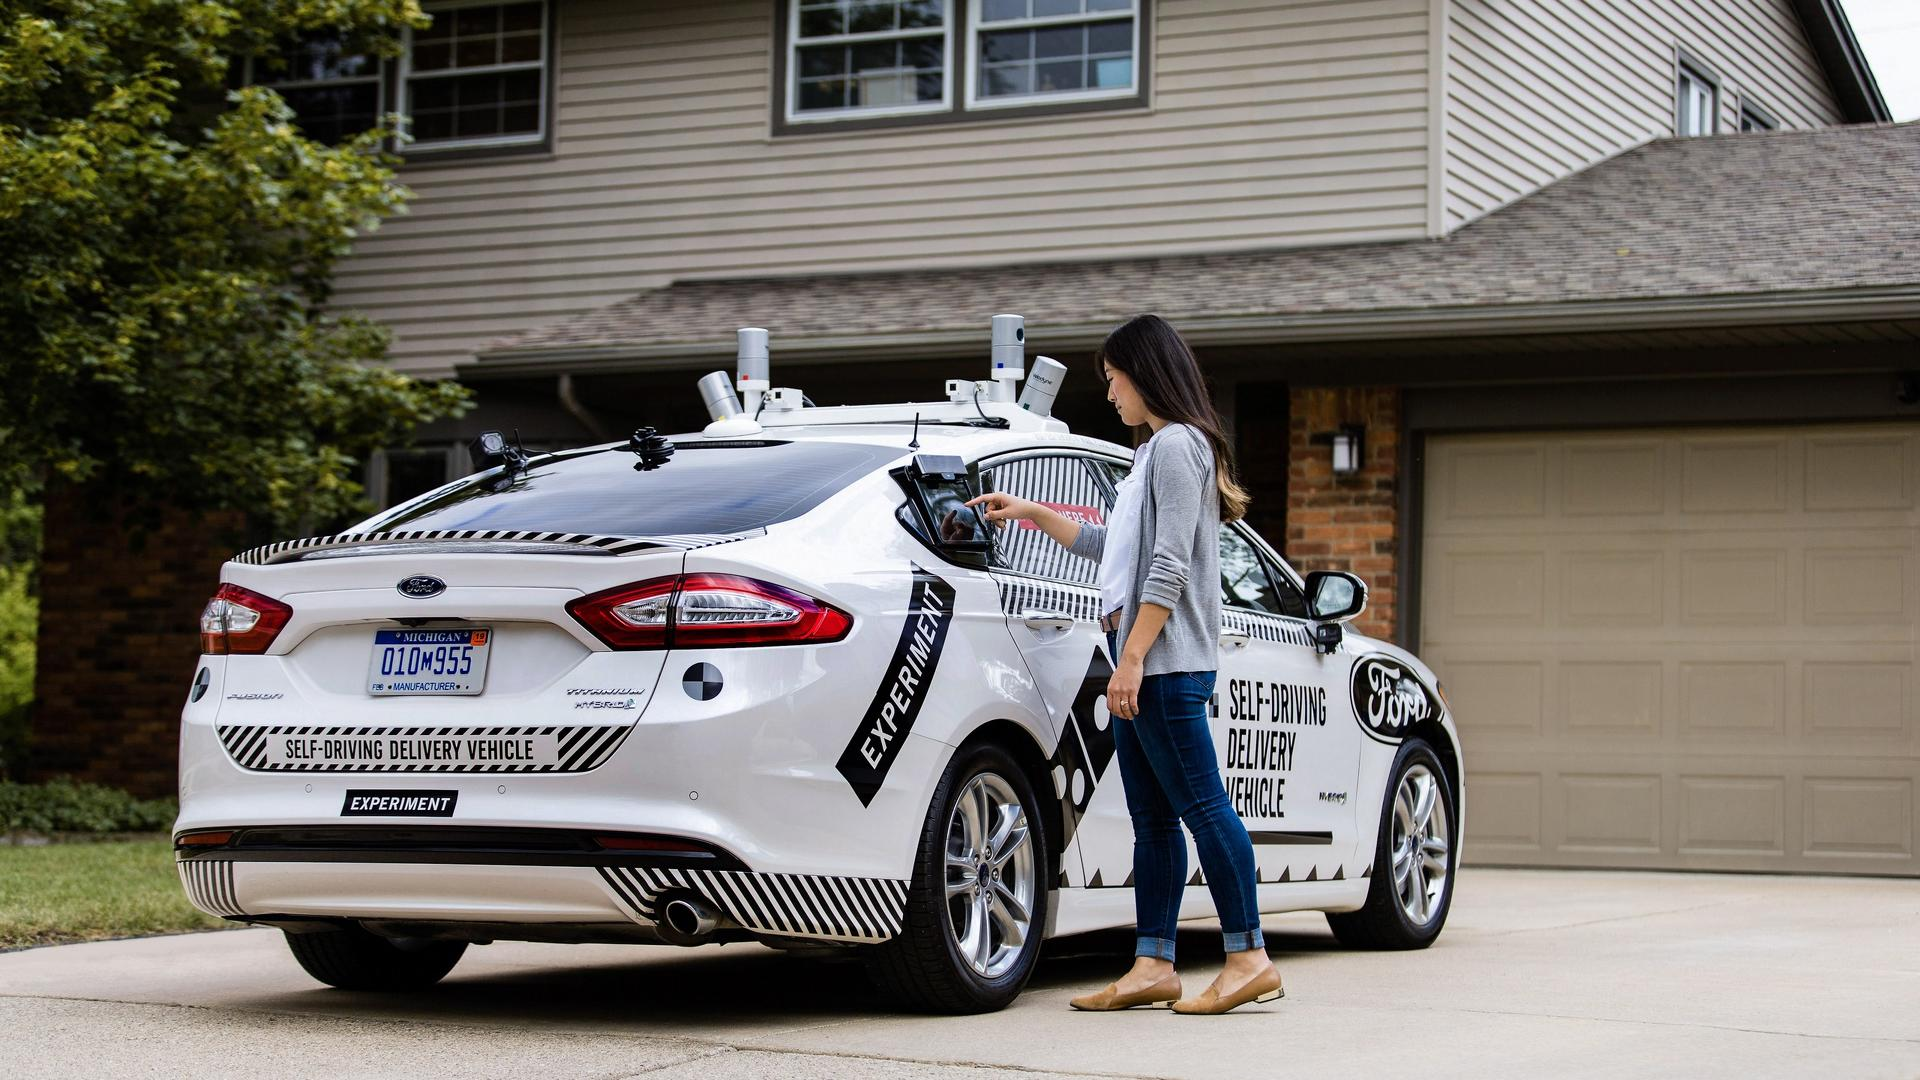 Ford and Domino's Autonomous Delivery Research